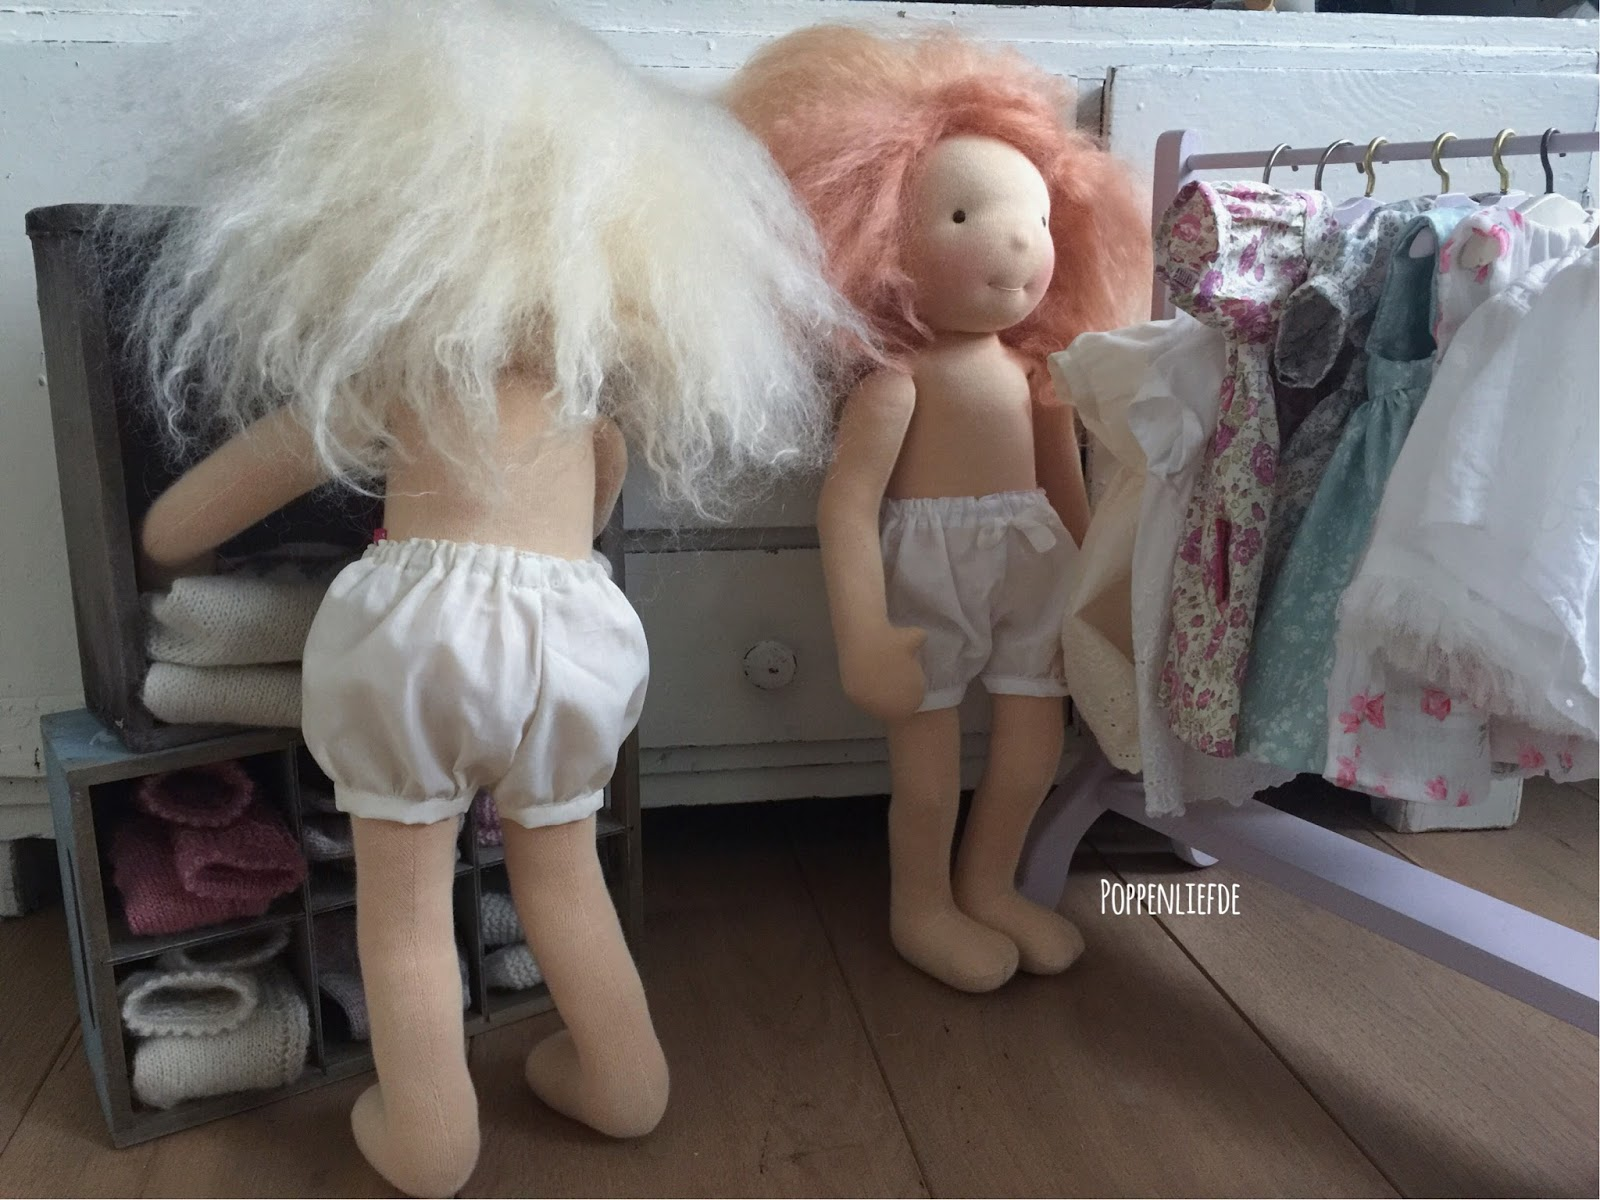 Poppenliefde dolls Florence and Louna